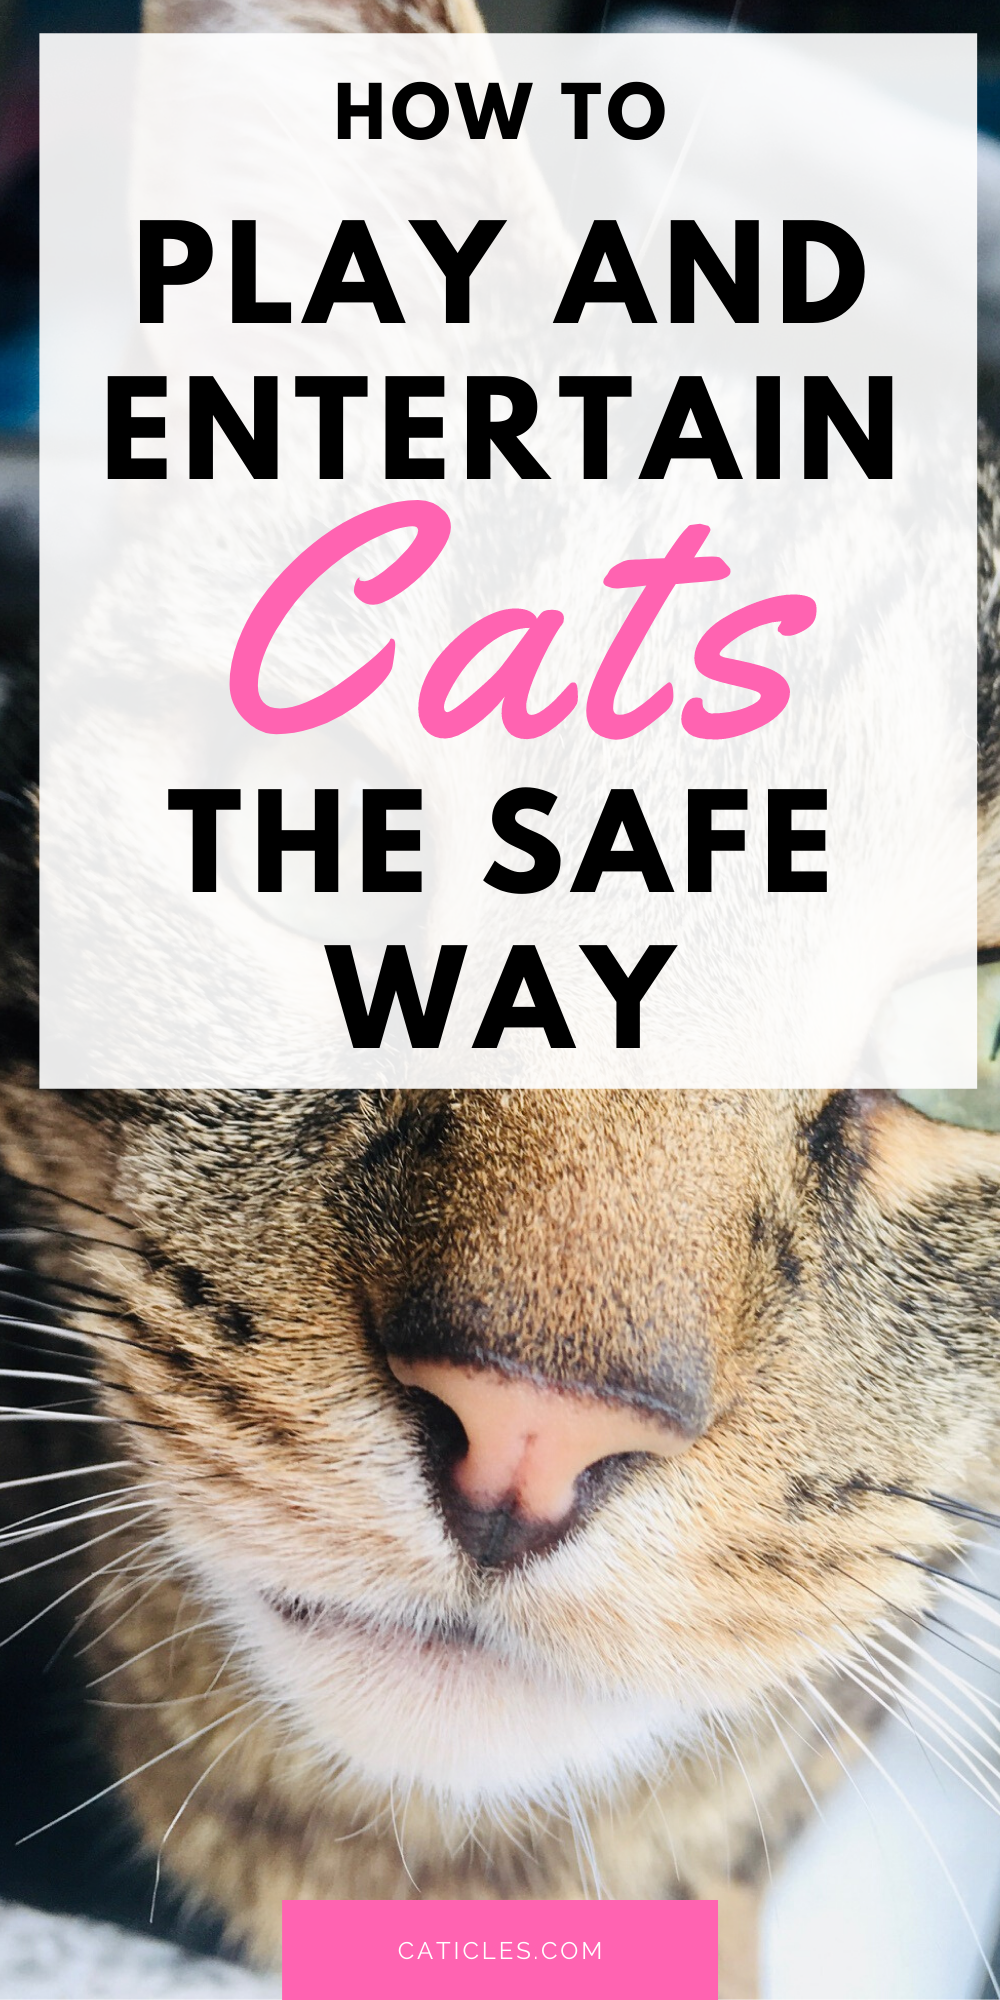 8 Safe Cat Toys And How To Use Them The Right Way Caticles In 2020 Cat Care Cat Care Tips Kitten Care